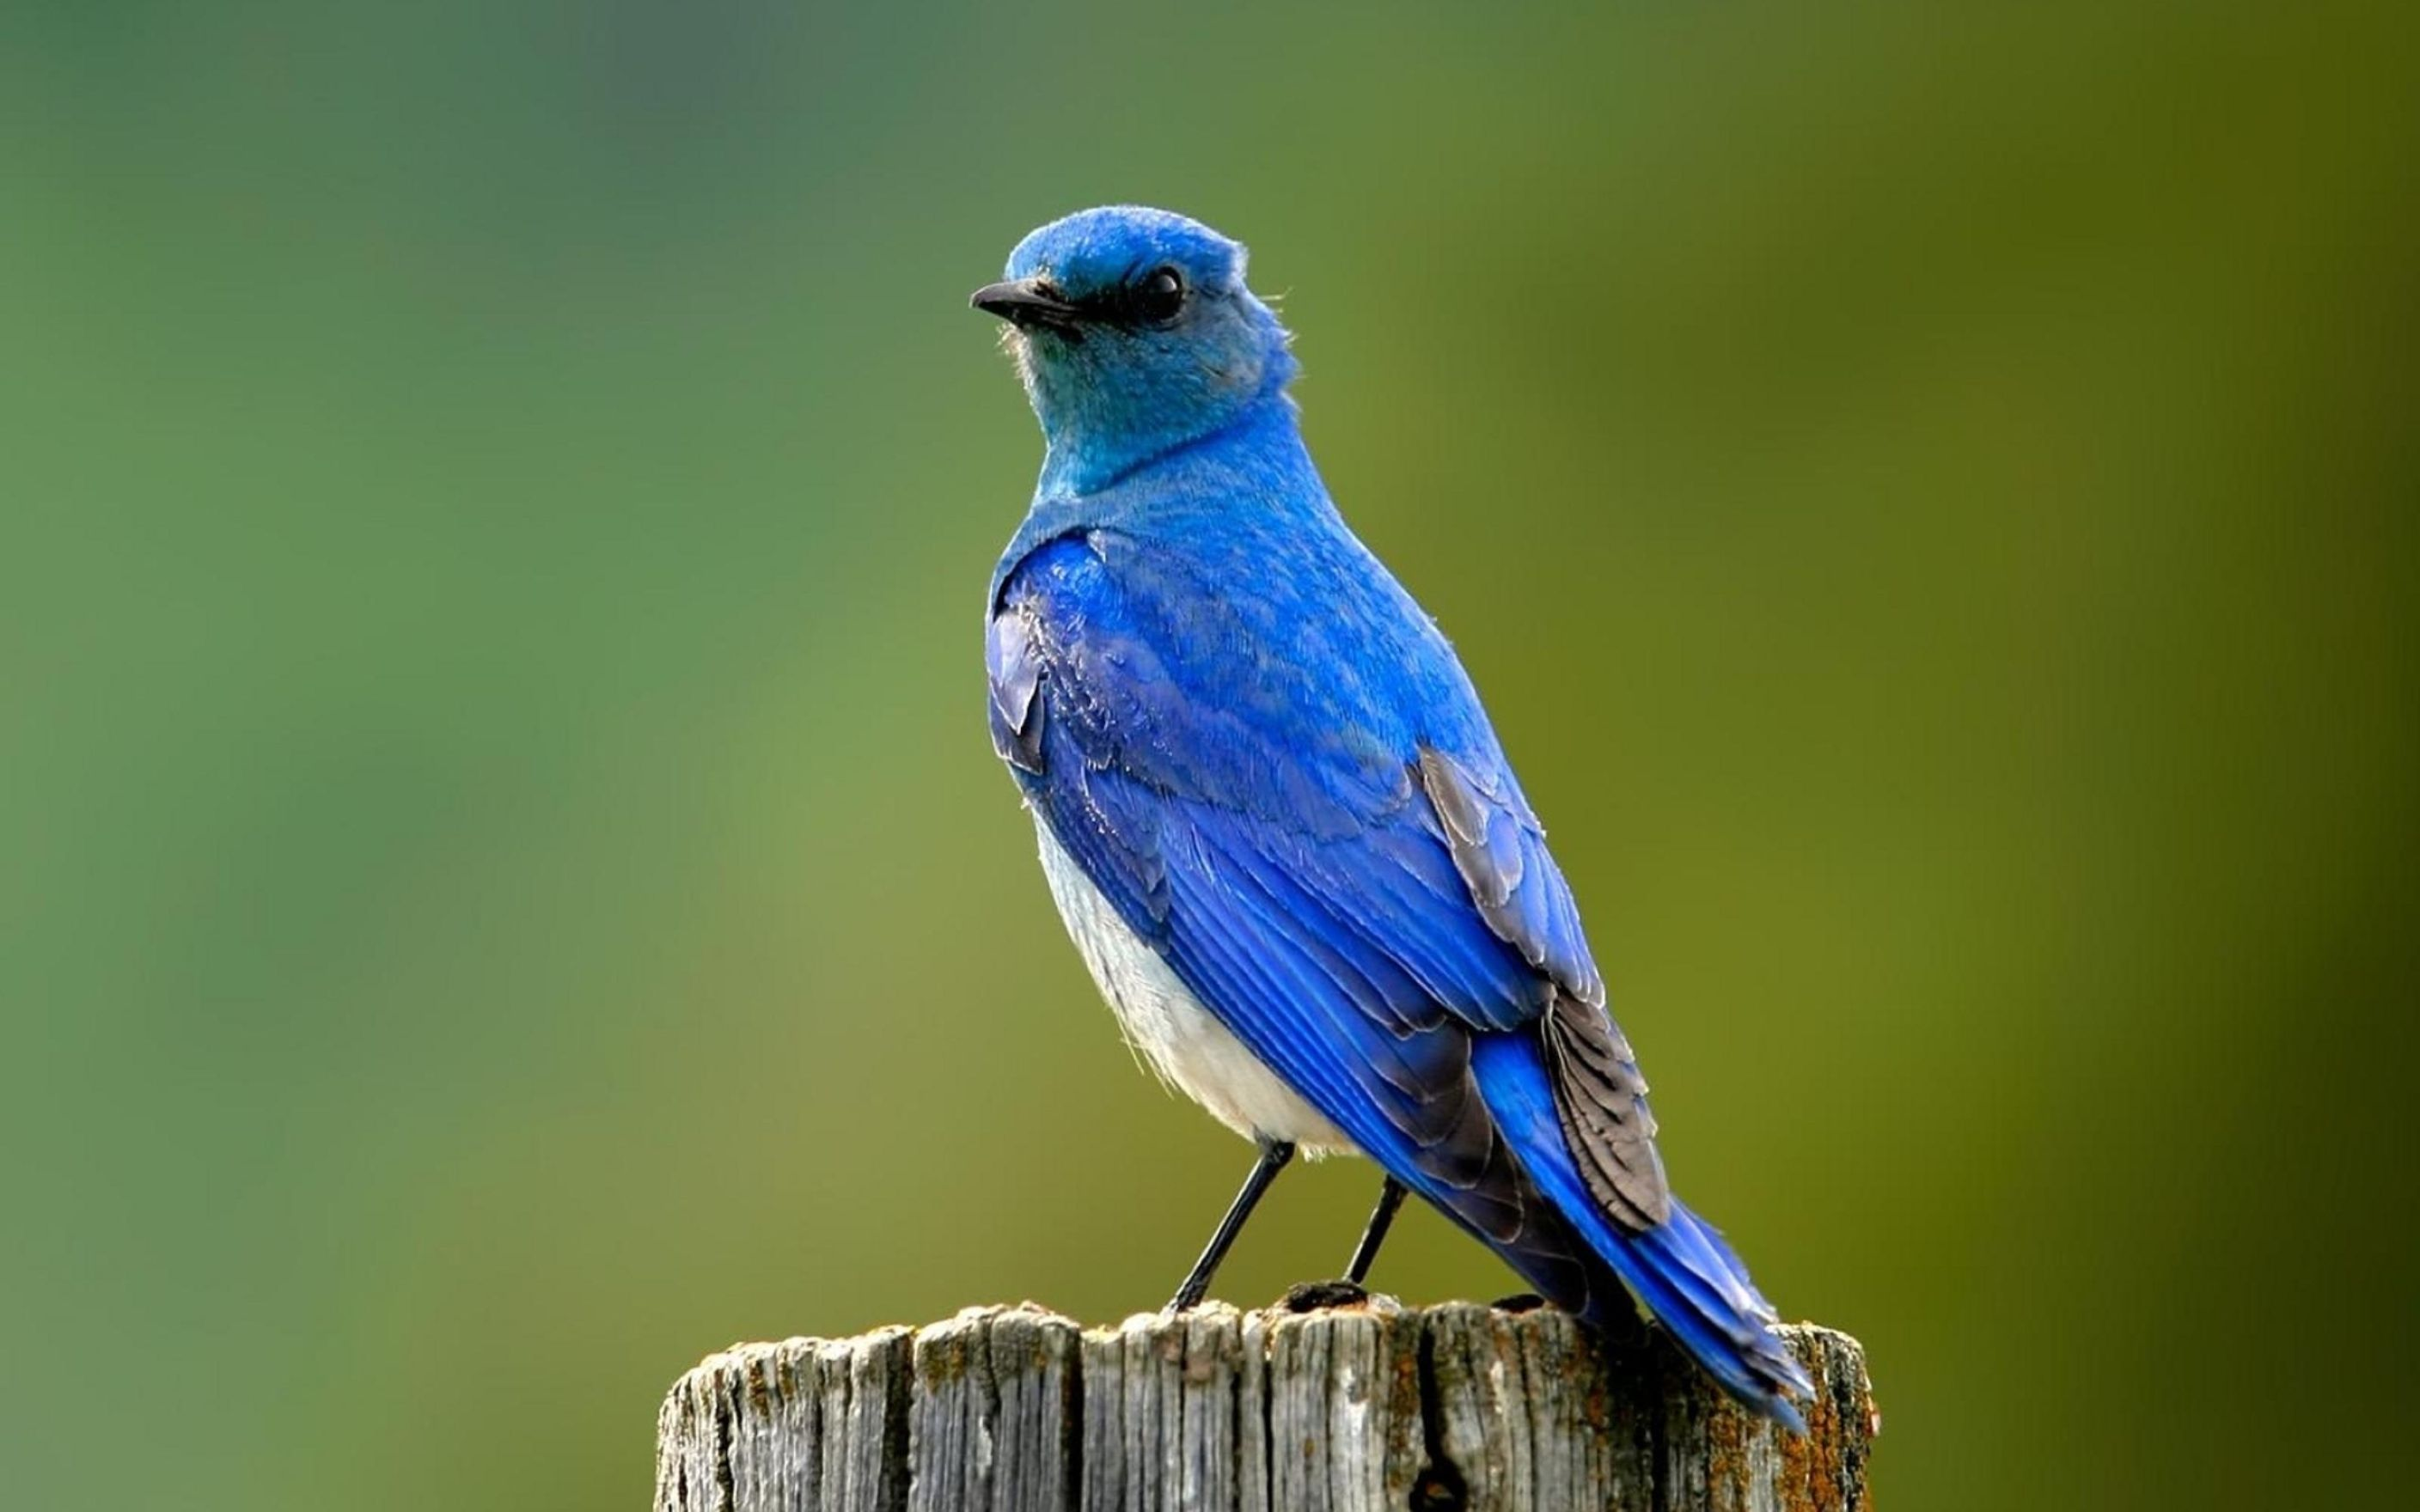 Download free HD Blue Bird Wallpaper, image